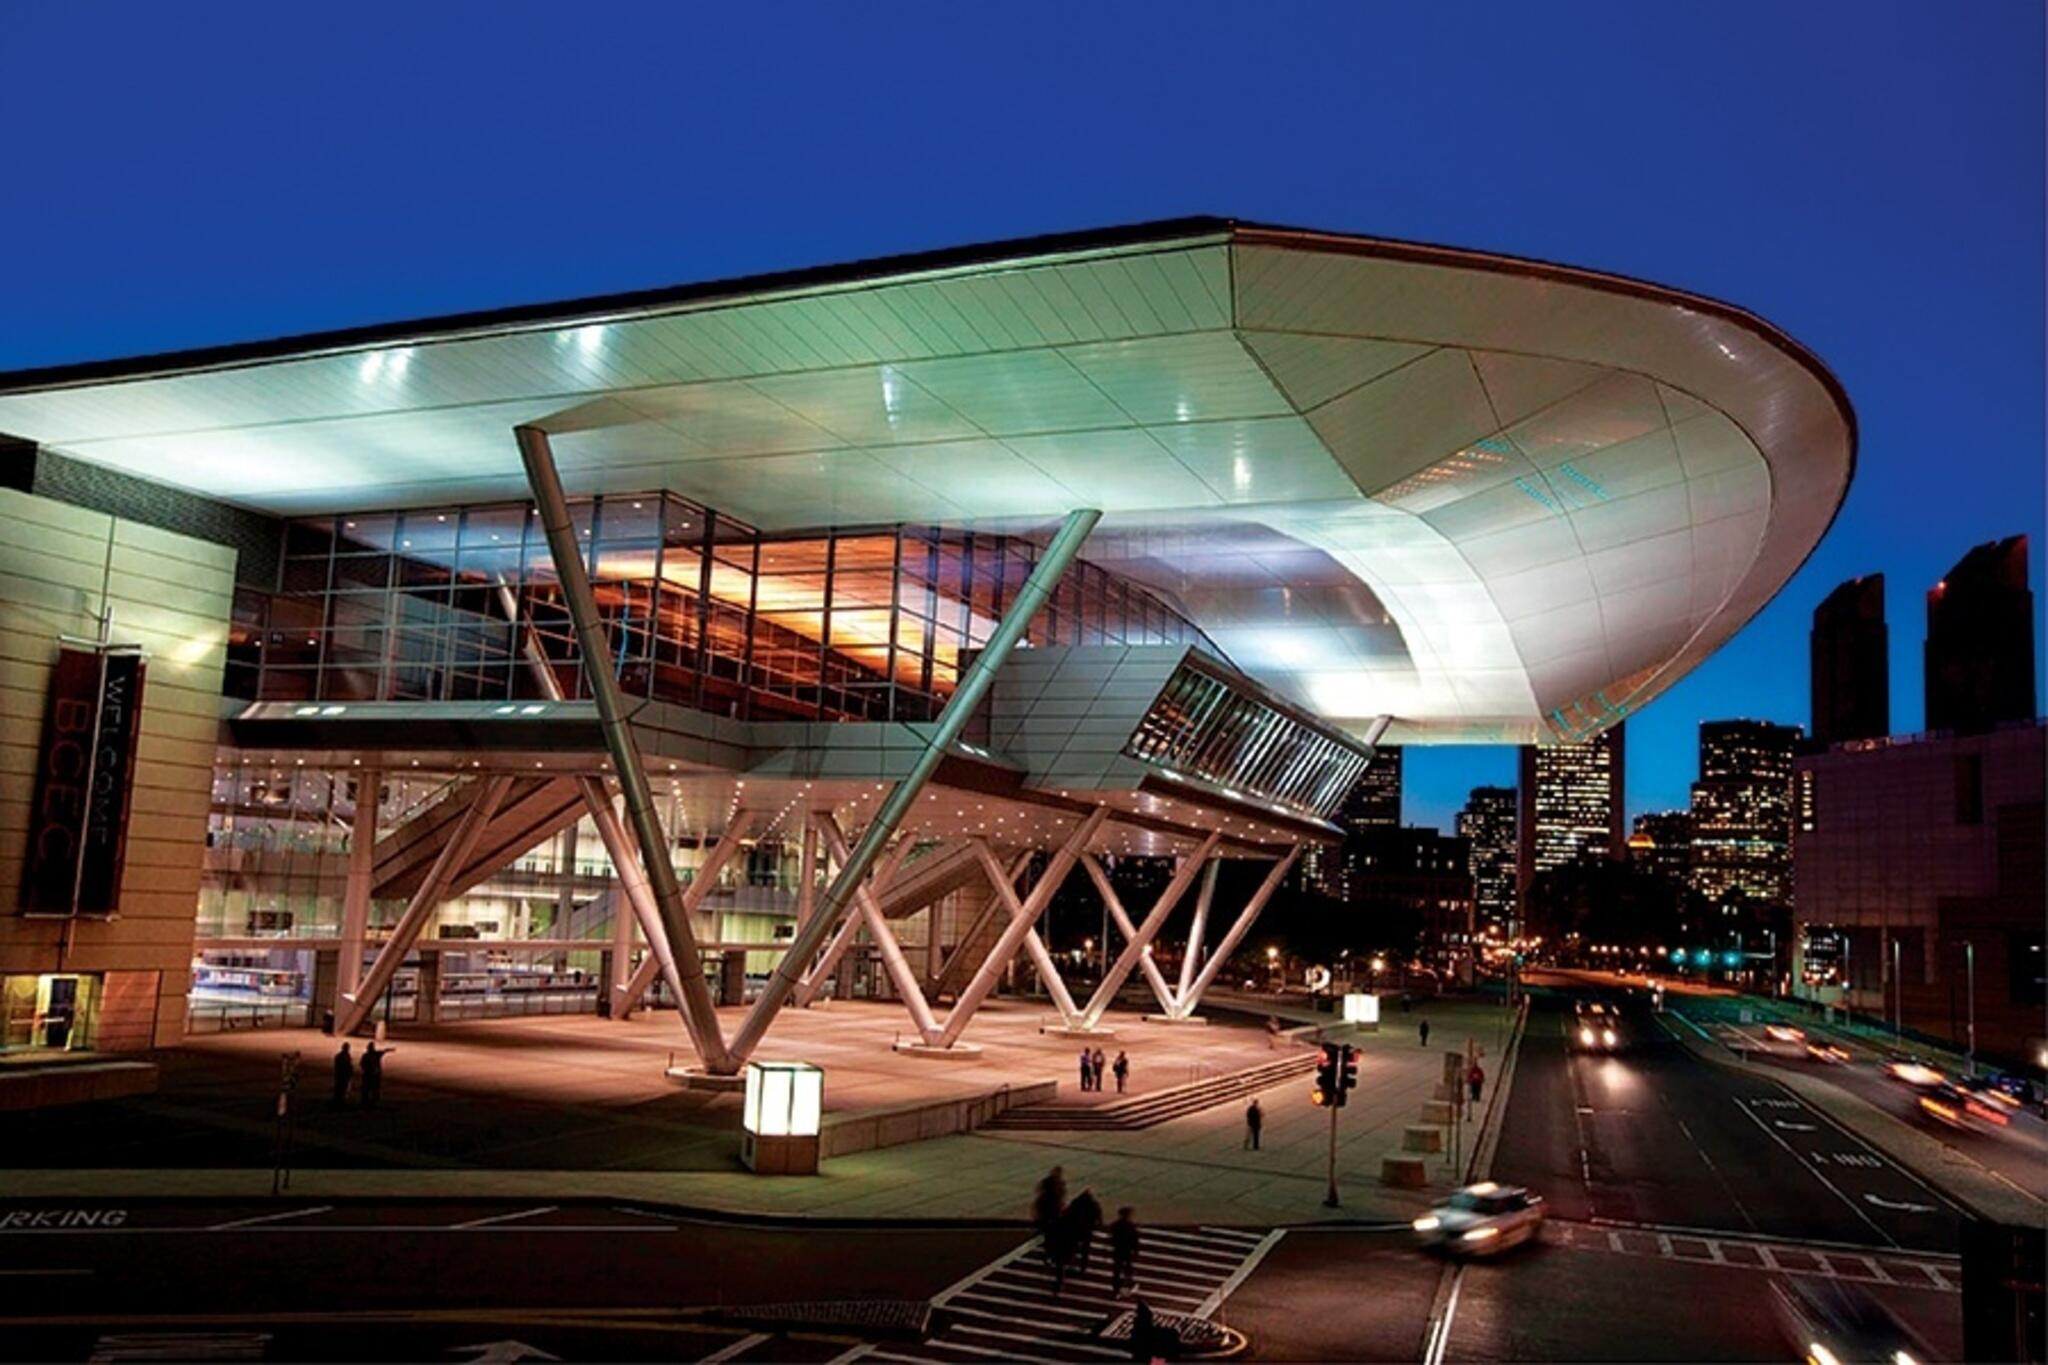 image of the Boston Convention Center in South Boston